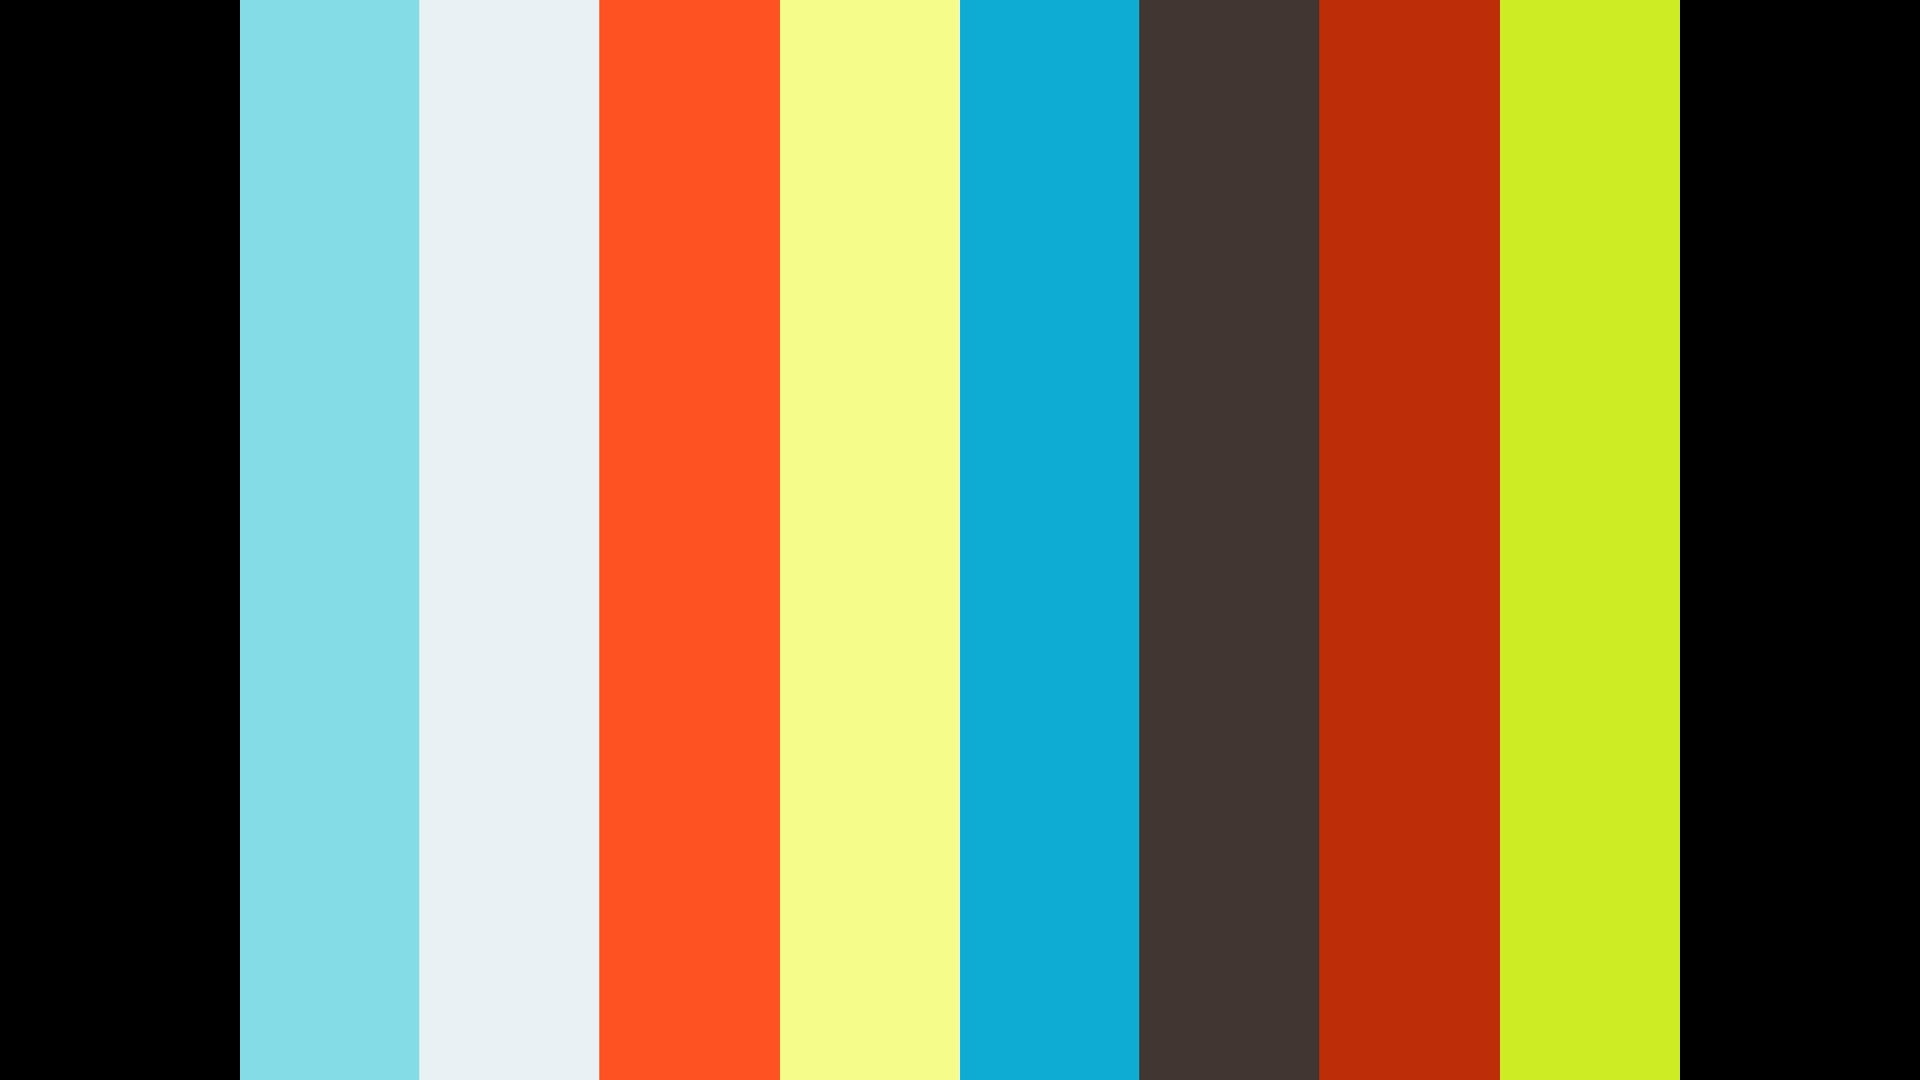 Big 12 - It's all here.